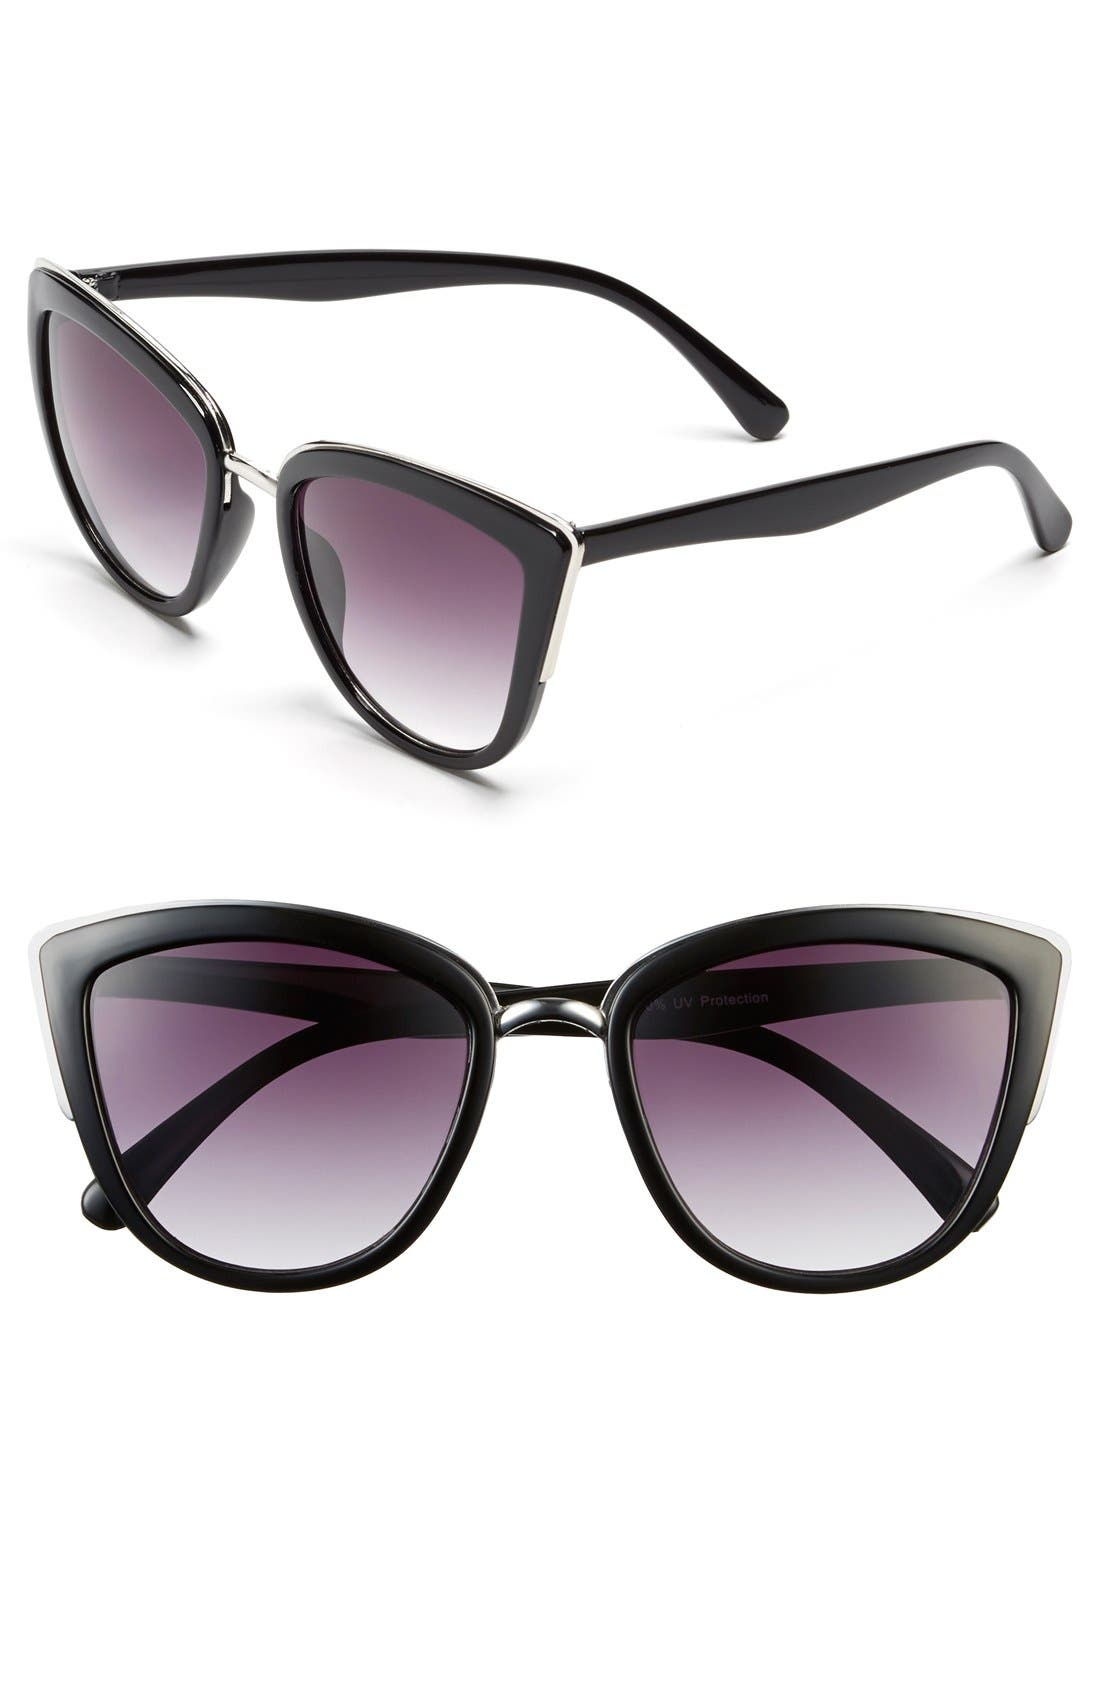 Main Image - BP. 55mm Metal Rim Cat Eye Sunglasses